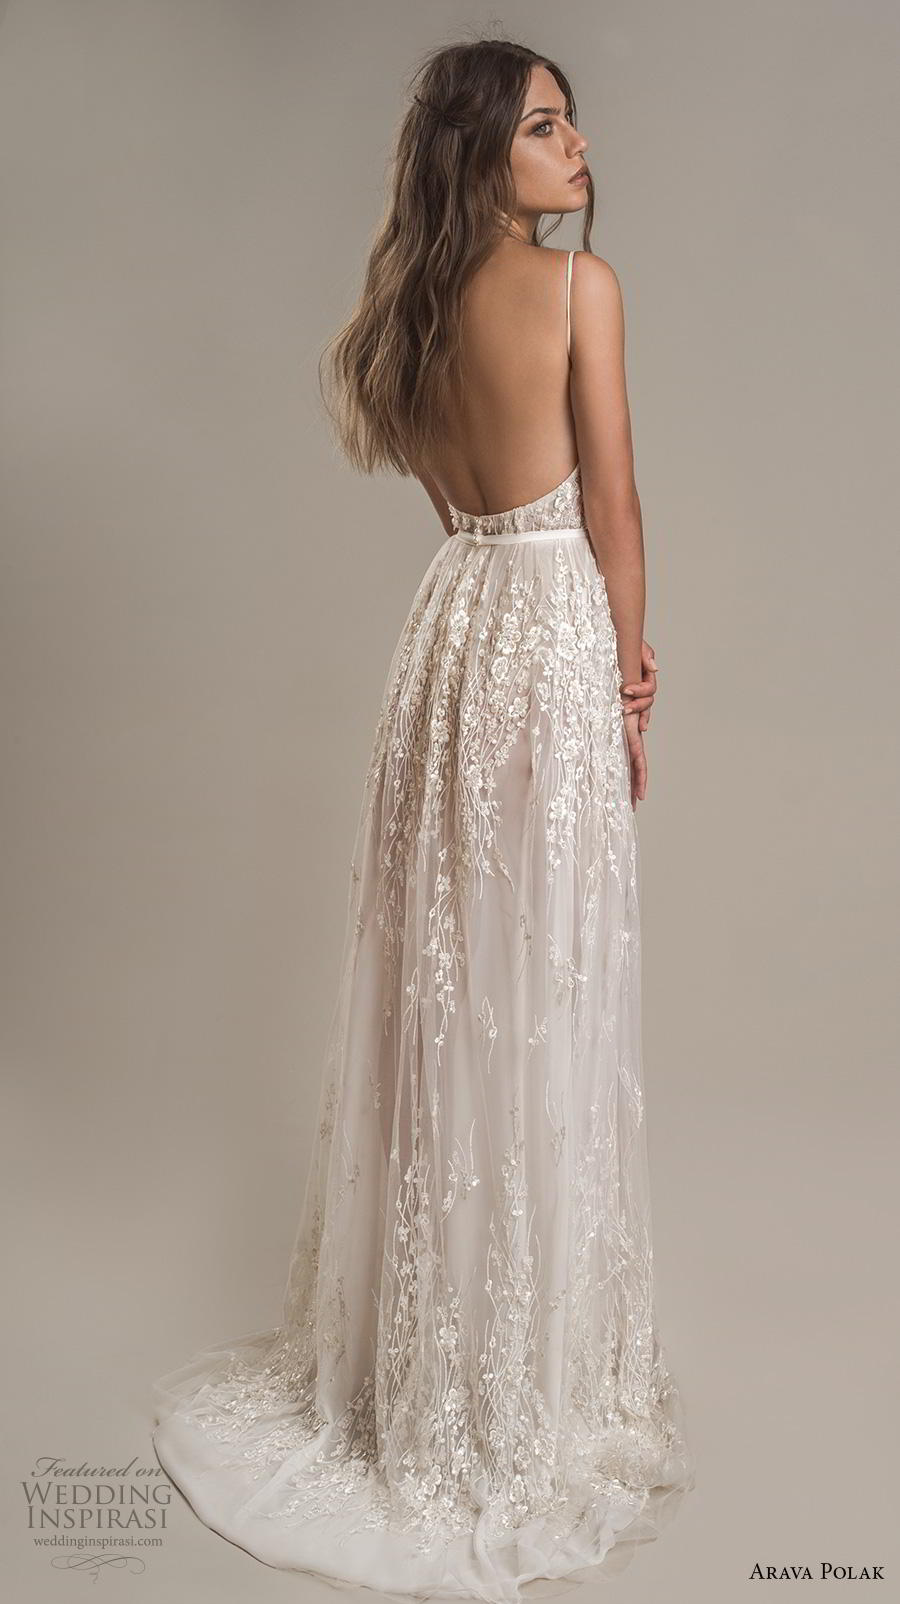 arava polak 2019 bridal sleeveless spaghetti strap sweetheart neckline full embellishment slit skirt romantic a line wedding dress backless low back sweep train (9) bv